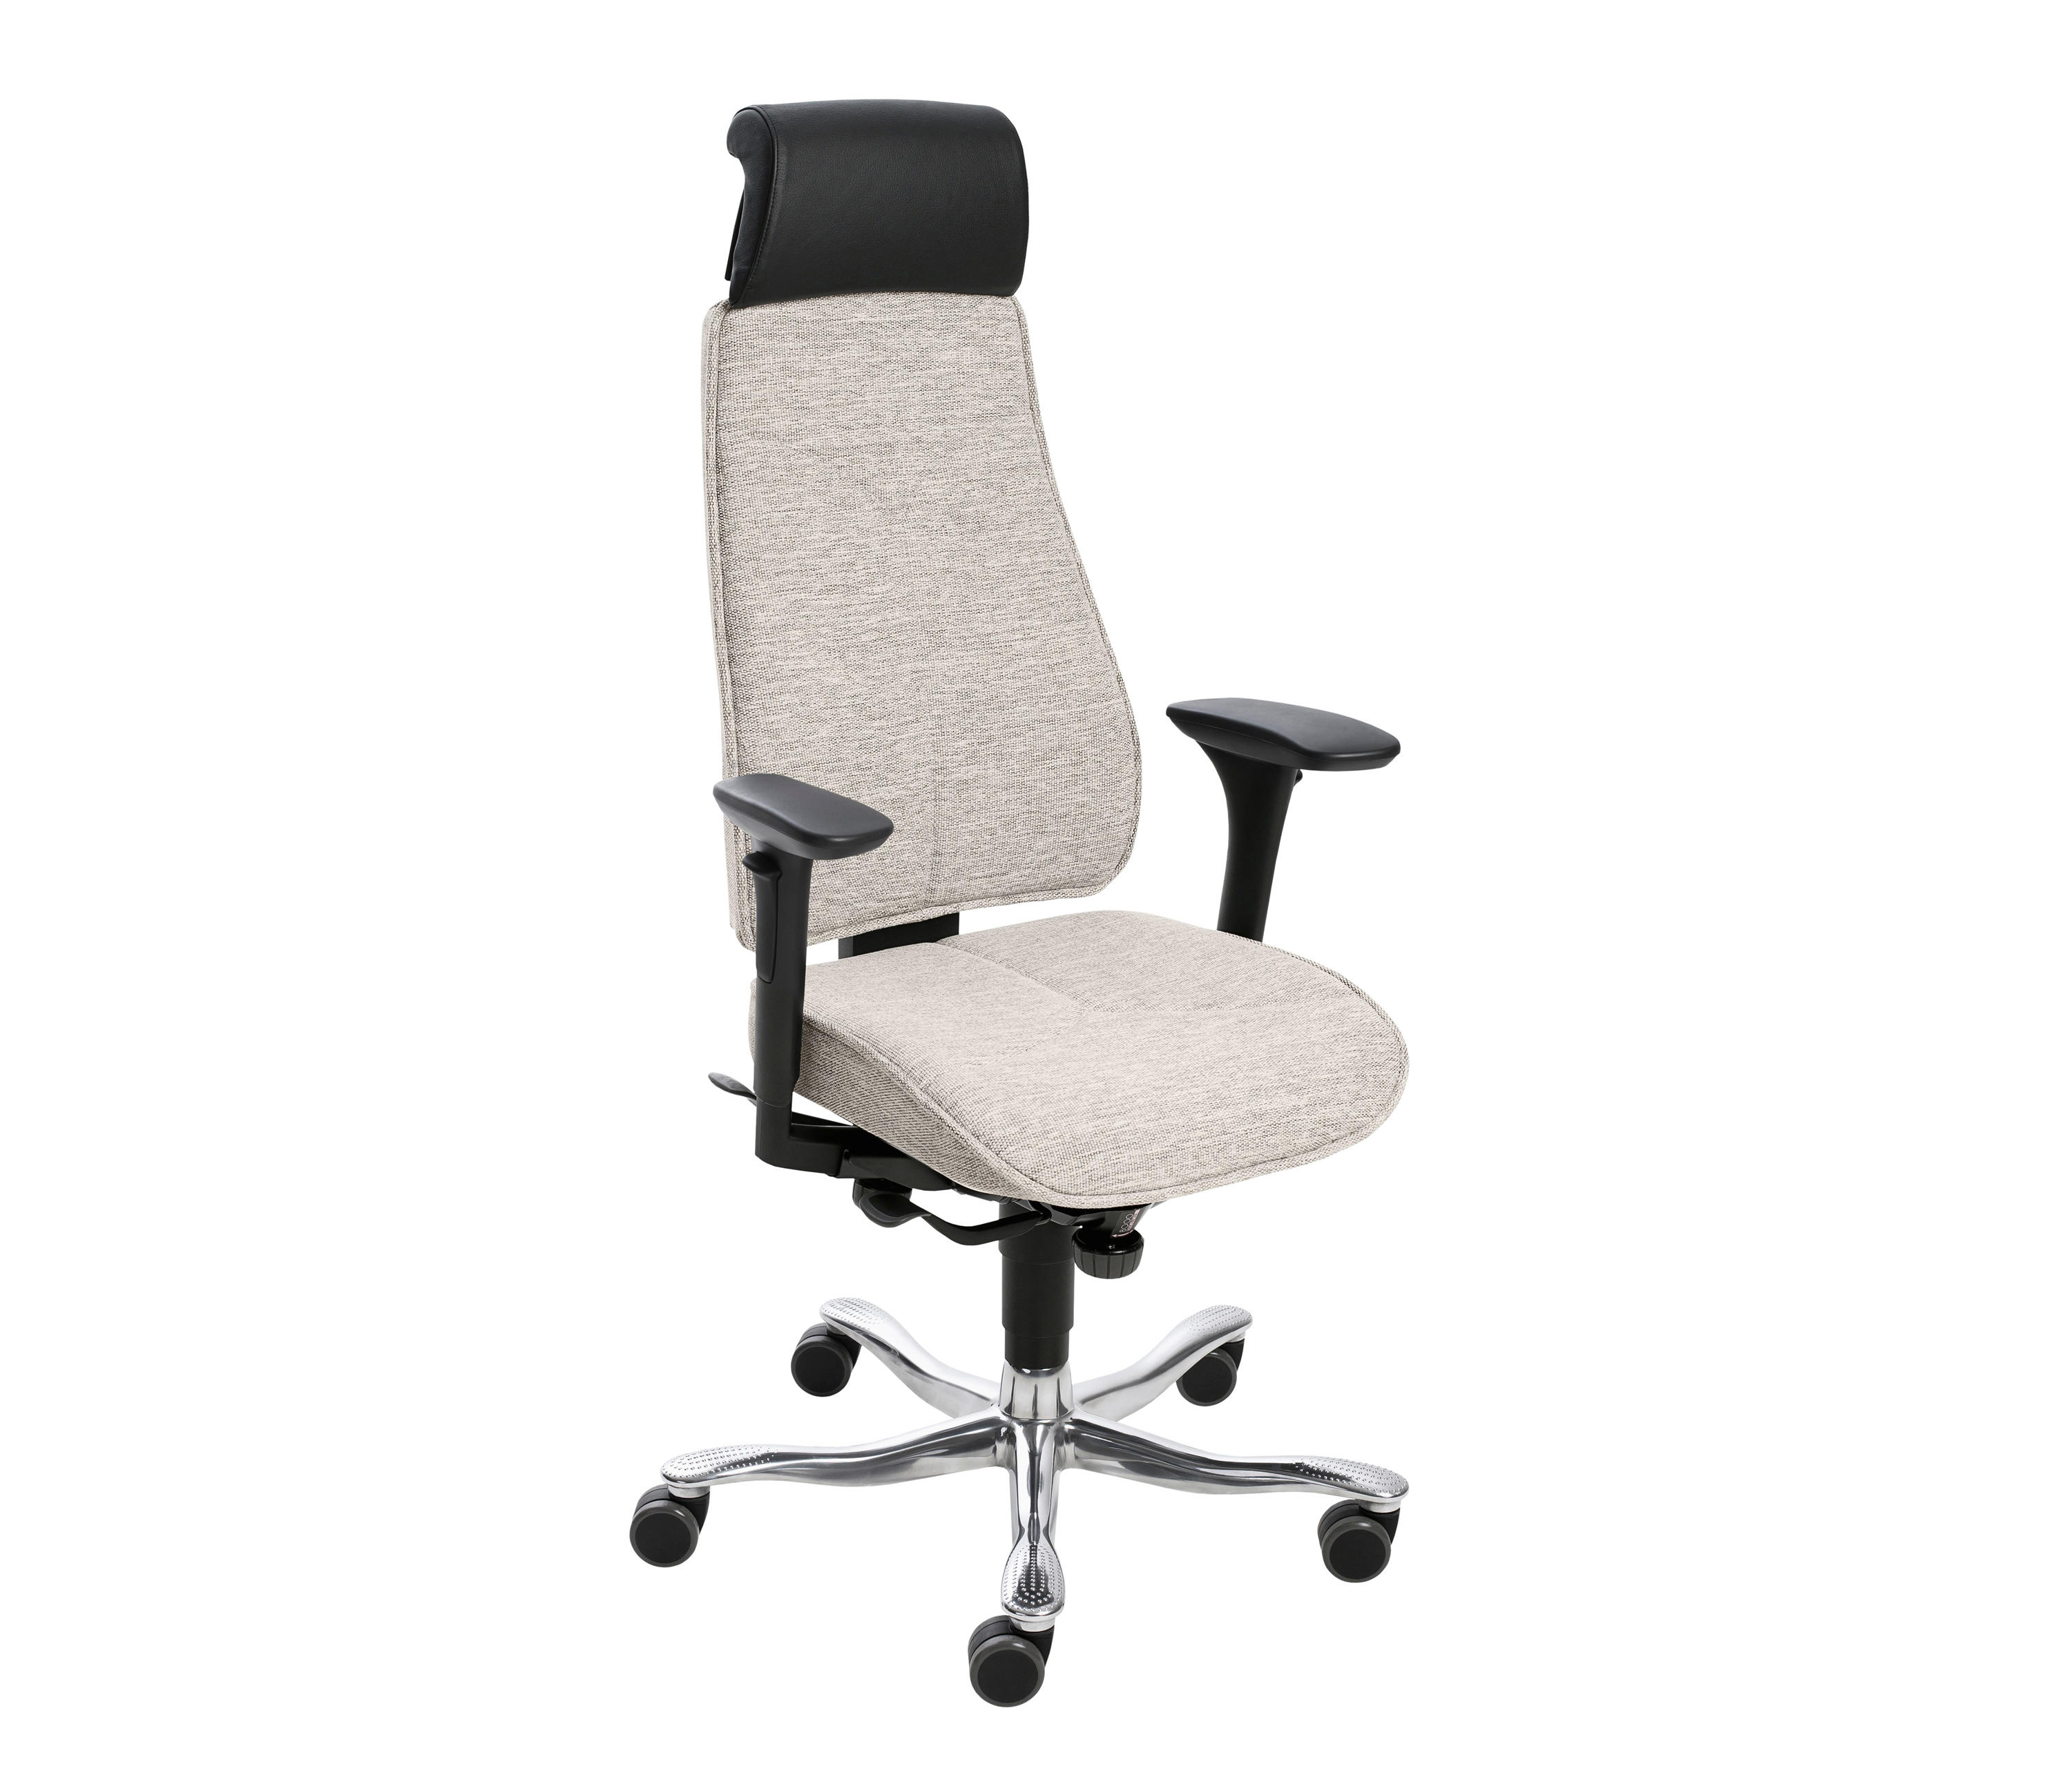 6000 - Management chairs from Kinnarps | Architonic